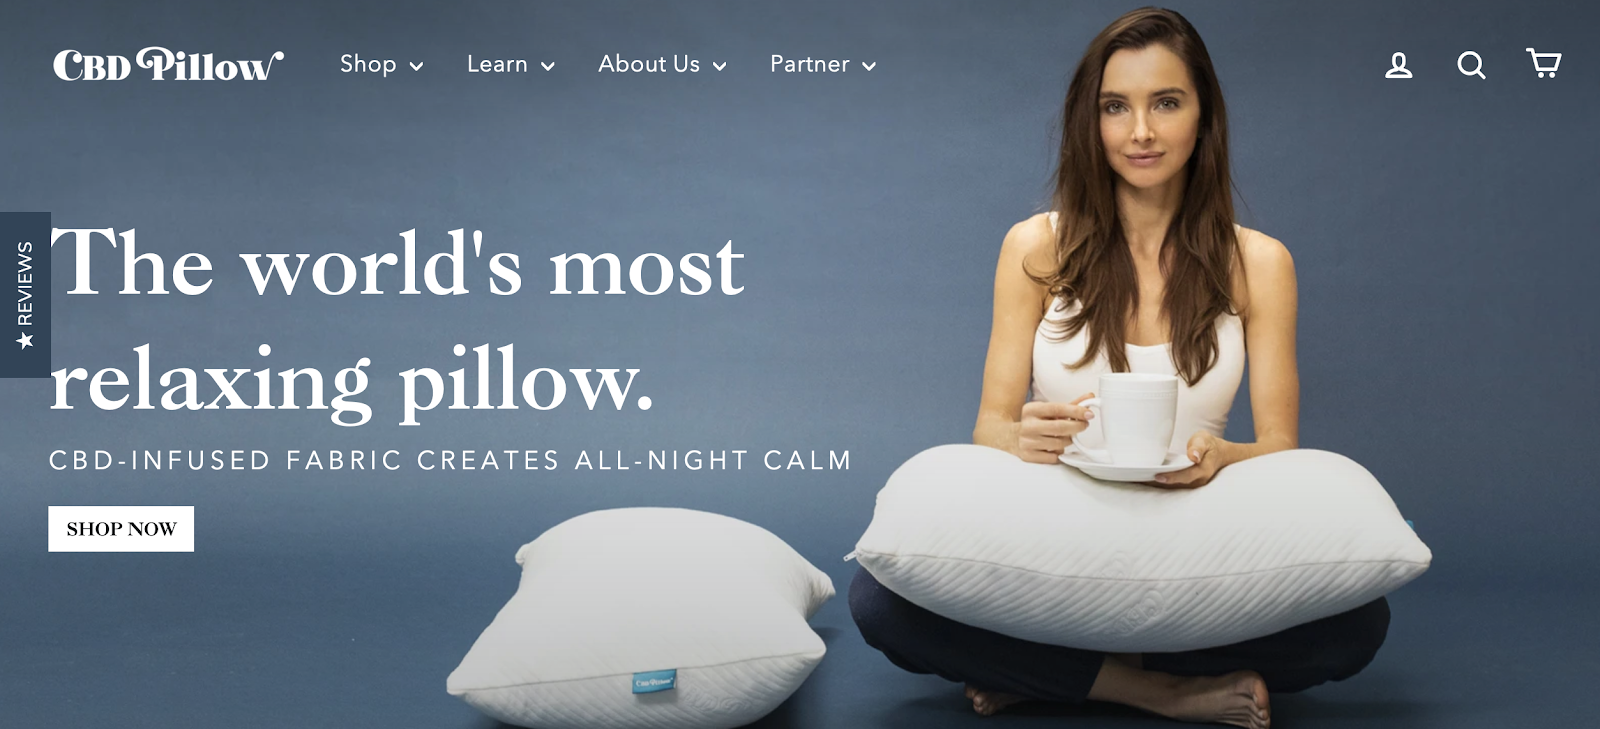 CBD Pillow | Brands Looking for Influencers